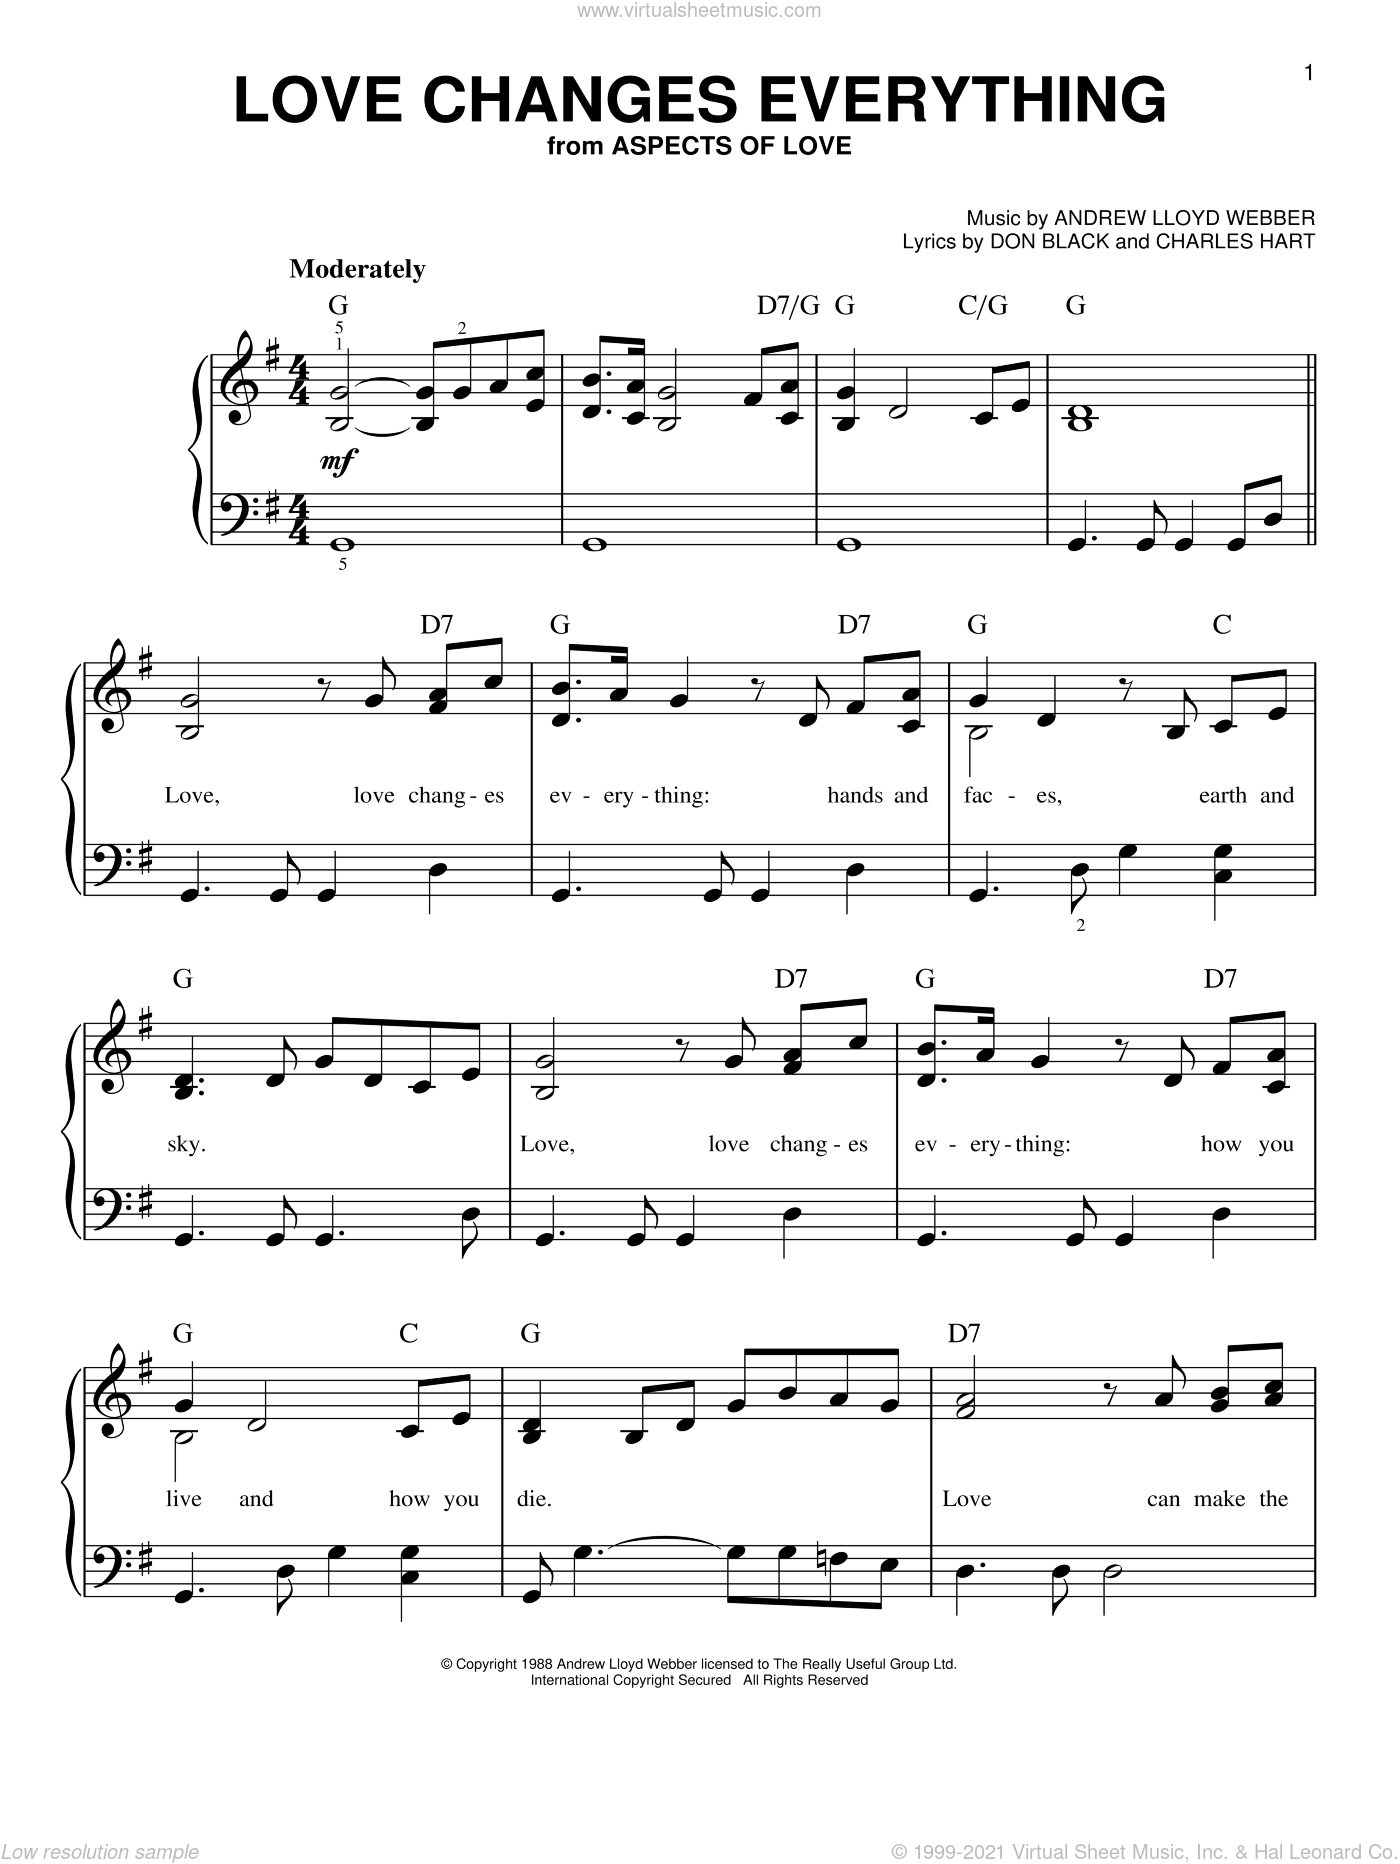 Love Changes Everything (from Aspects of Love), (easy) sheet music for piano solo by Andrew Lloyd Webber, Aspects Of Love (Musical), Charles Hart and Don Black, easy skill level